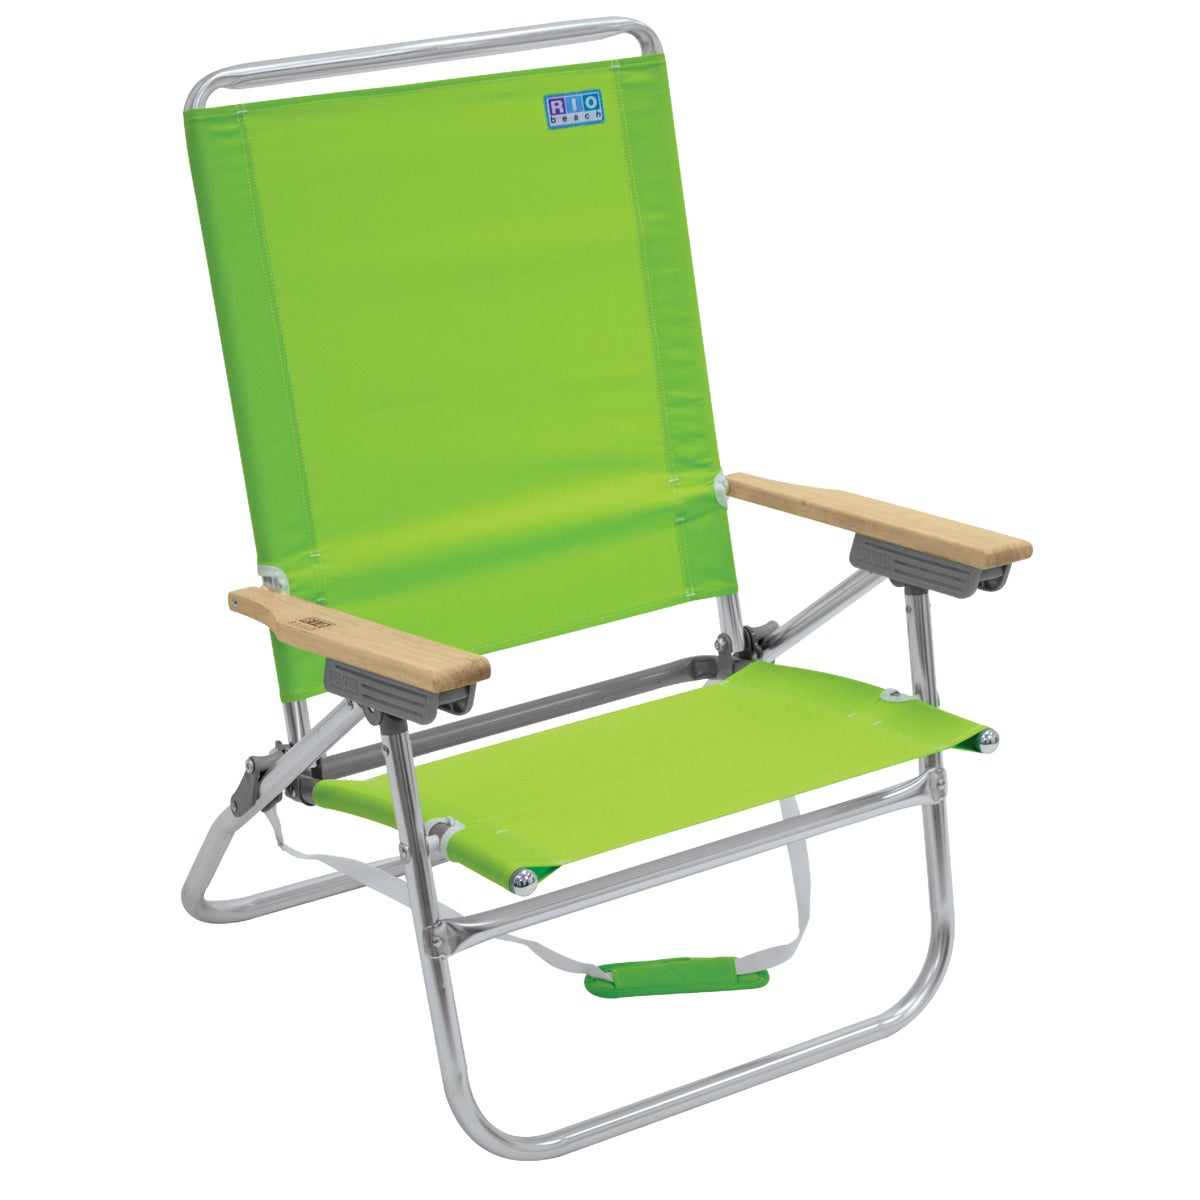 EASY-IN EASY-OUT CHAIR - SC602-1401 by Rio Brands  Ningbo1